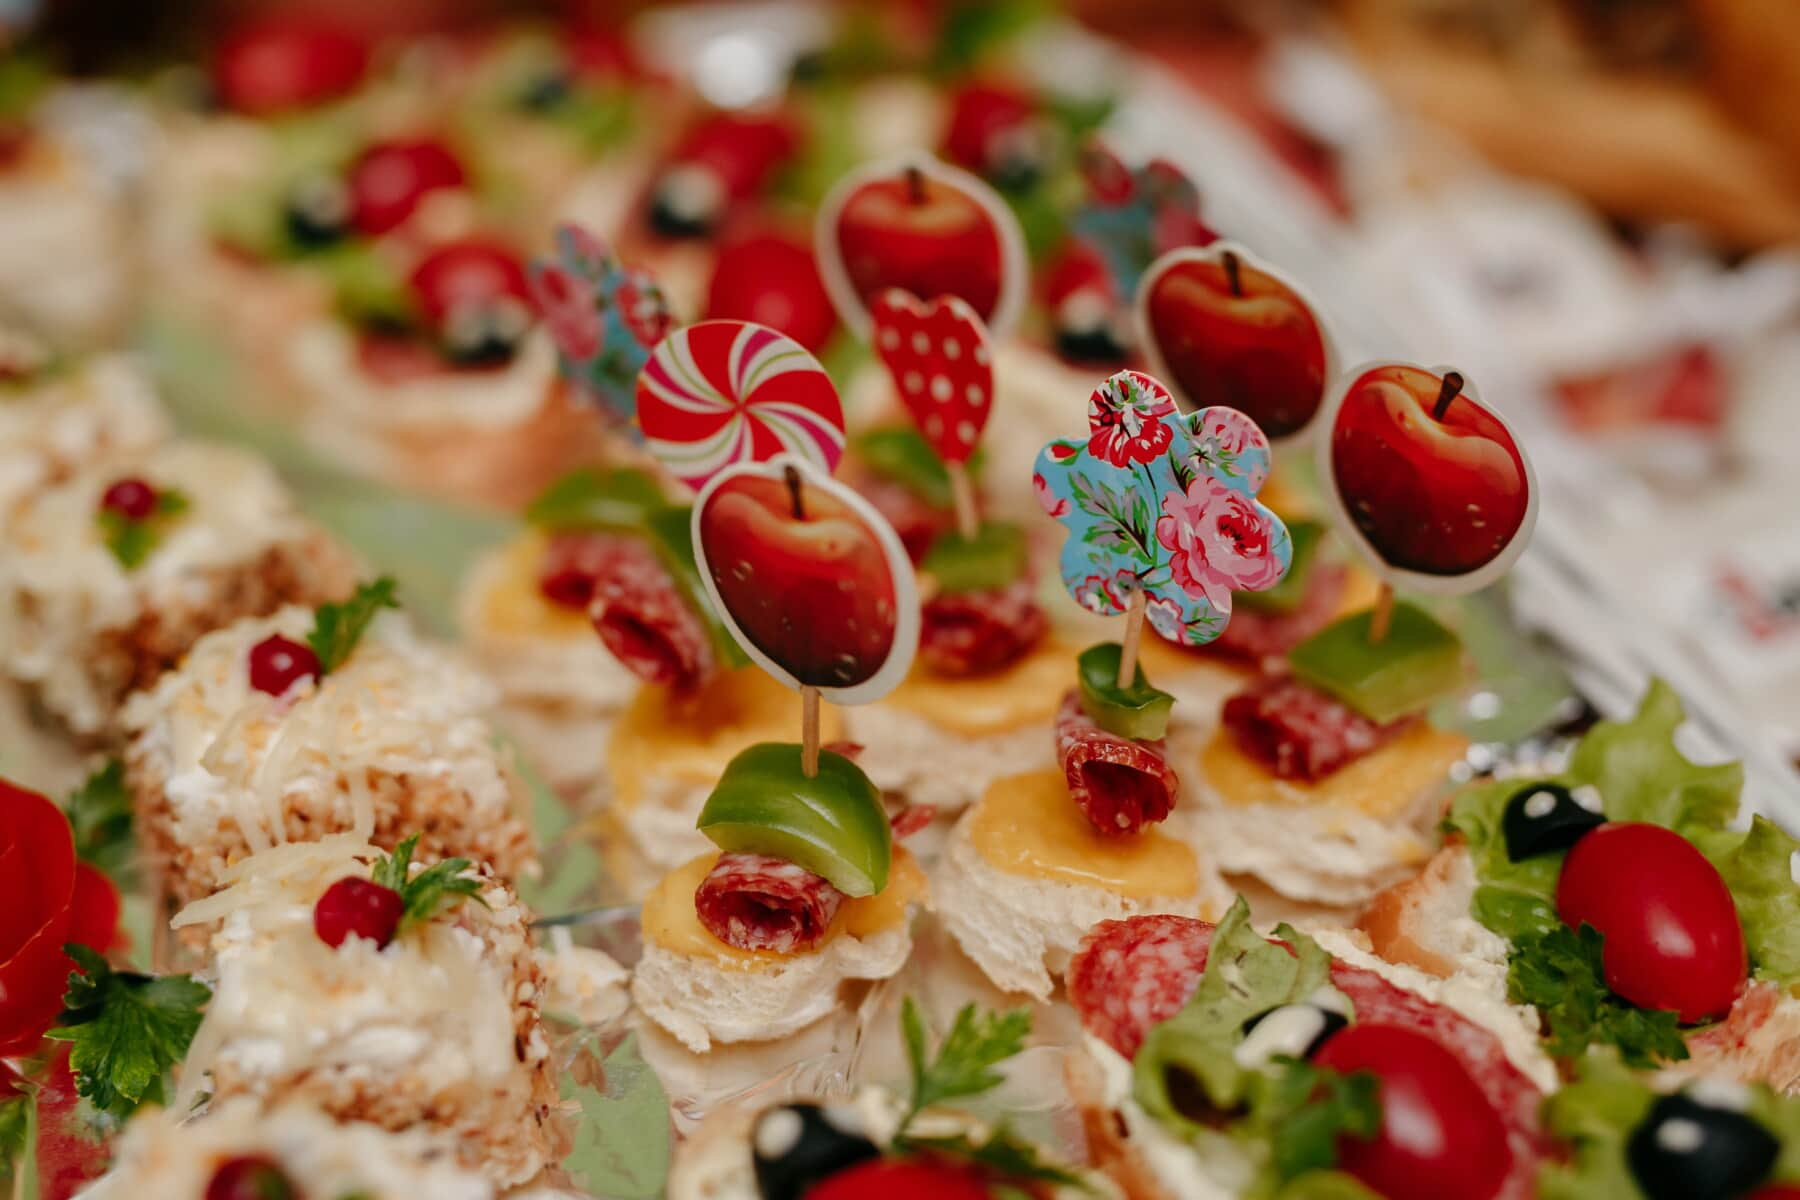 snack, fast food, decoration, miniature, meal, food, lunch, salad, dinner, appetizer